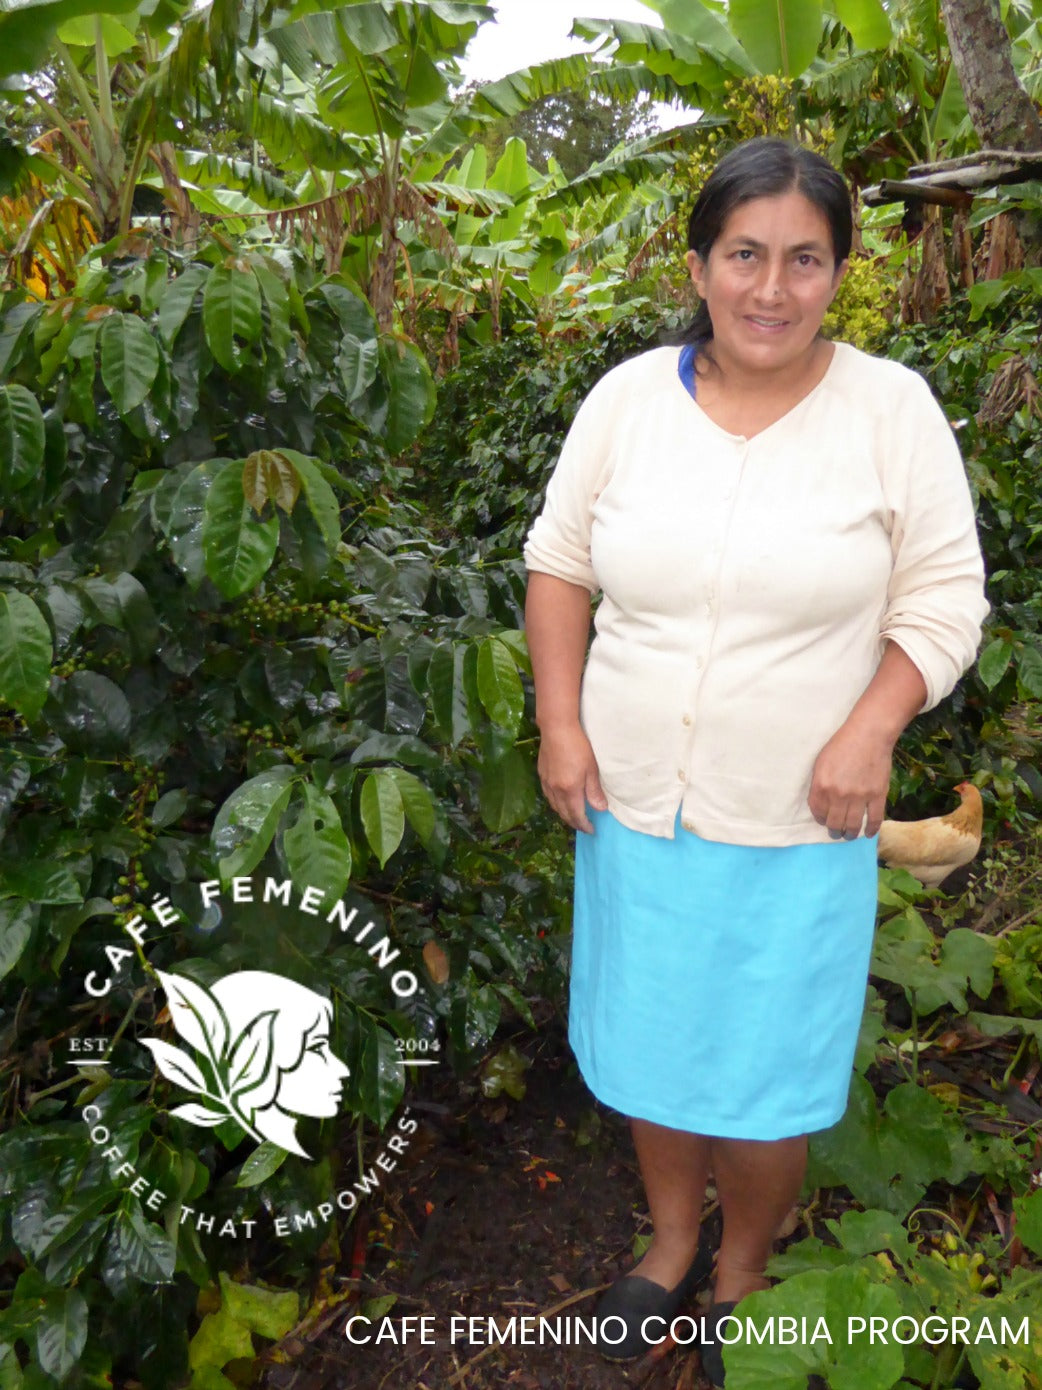 With every plant grown, the women farmers of the Café Femenino Colombia take up space in their communities, and contribute to their collective voice as women, farmers, and agents of social change.